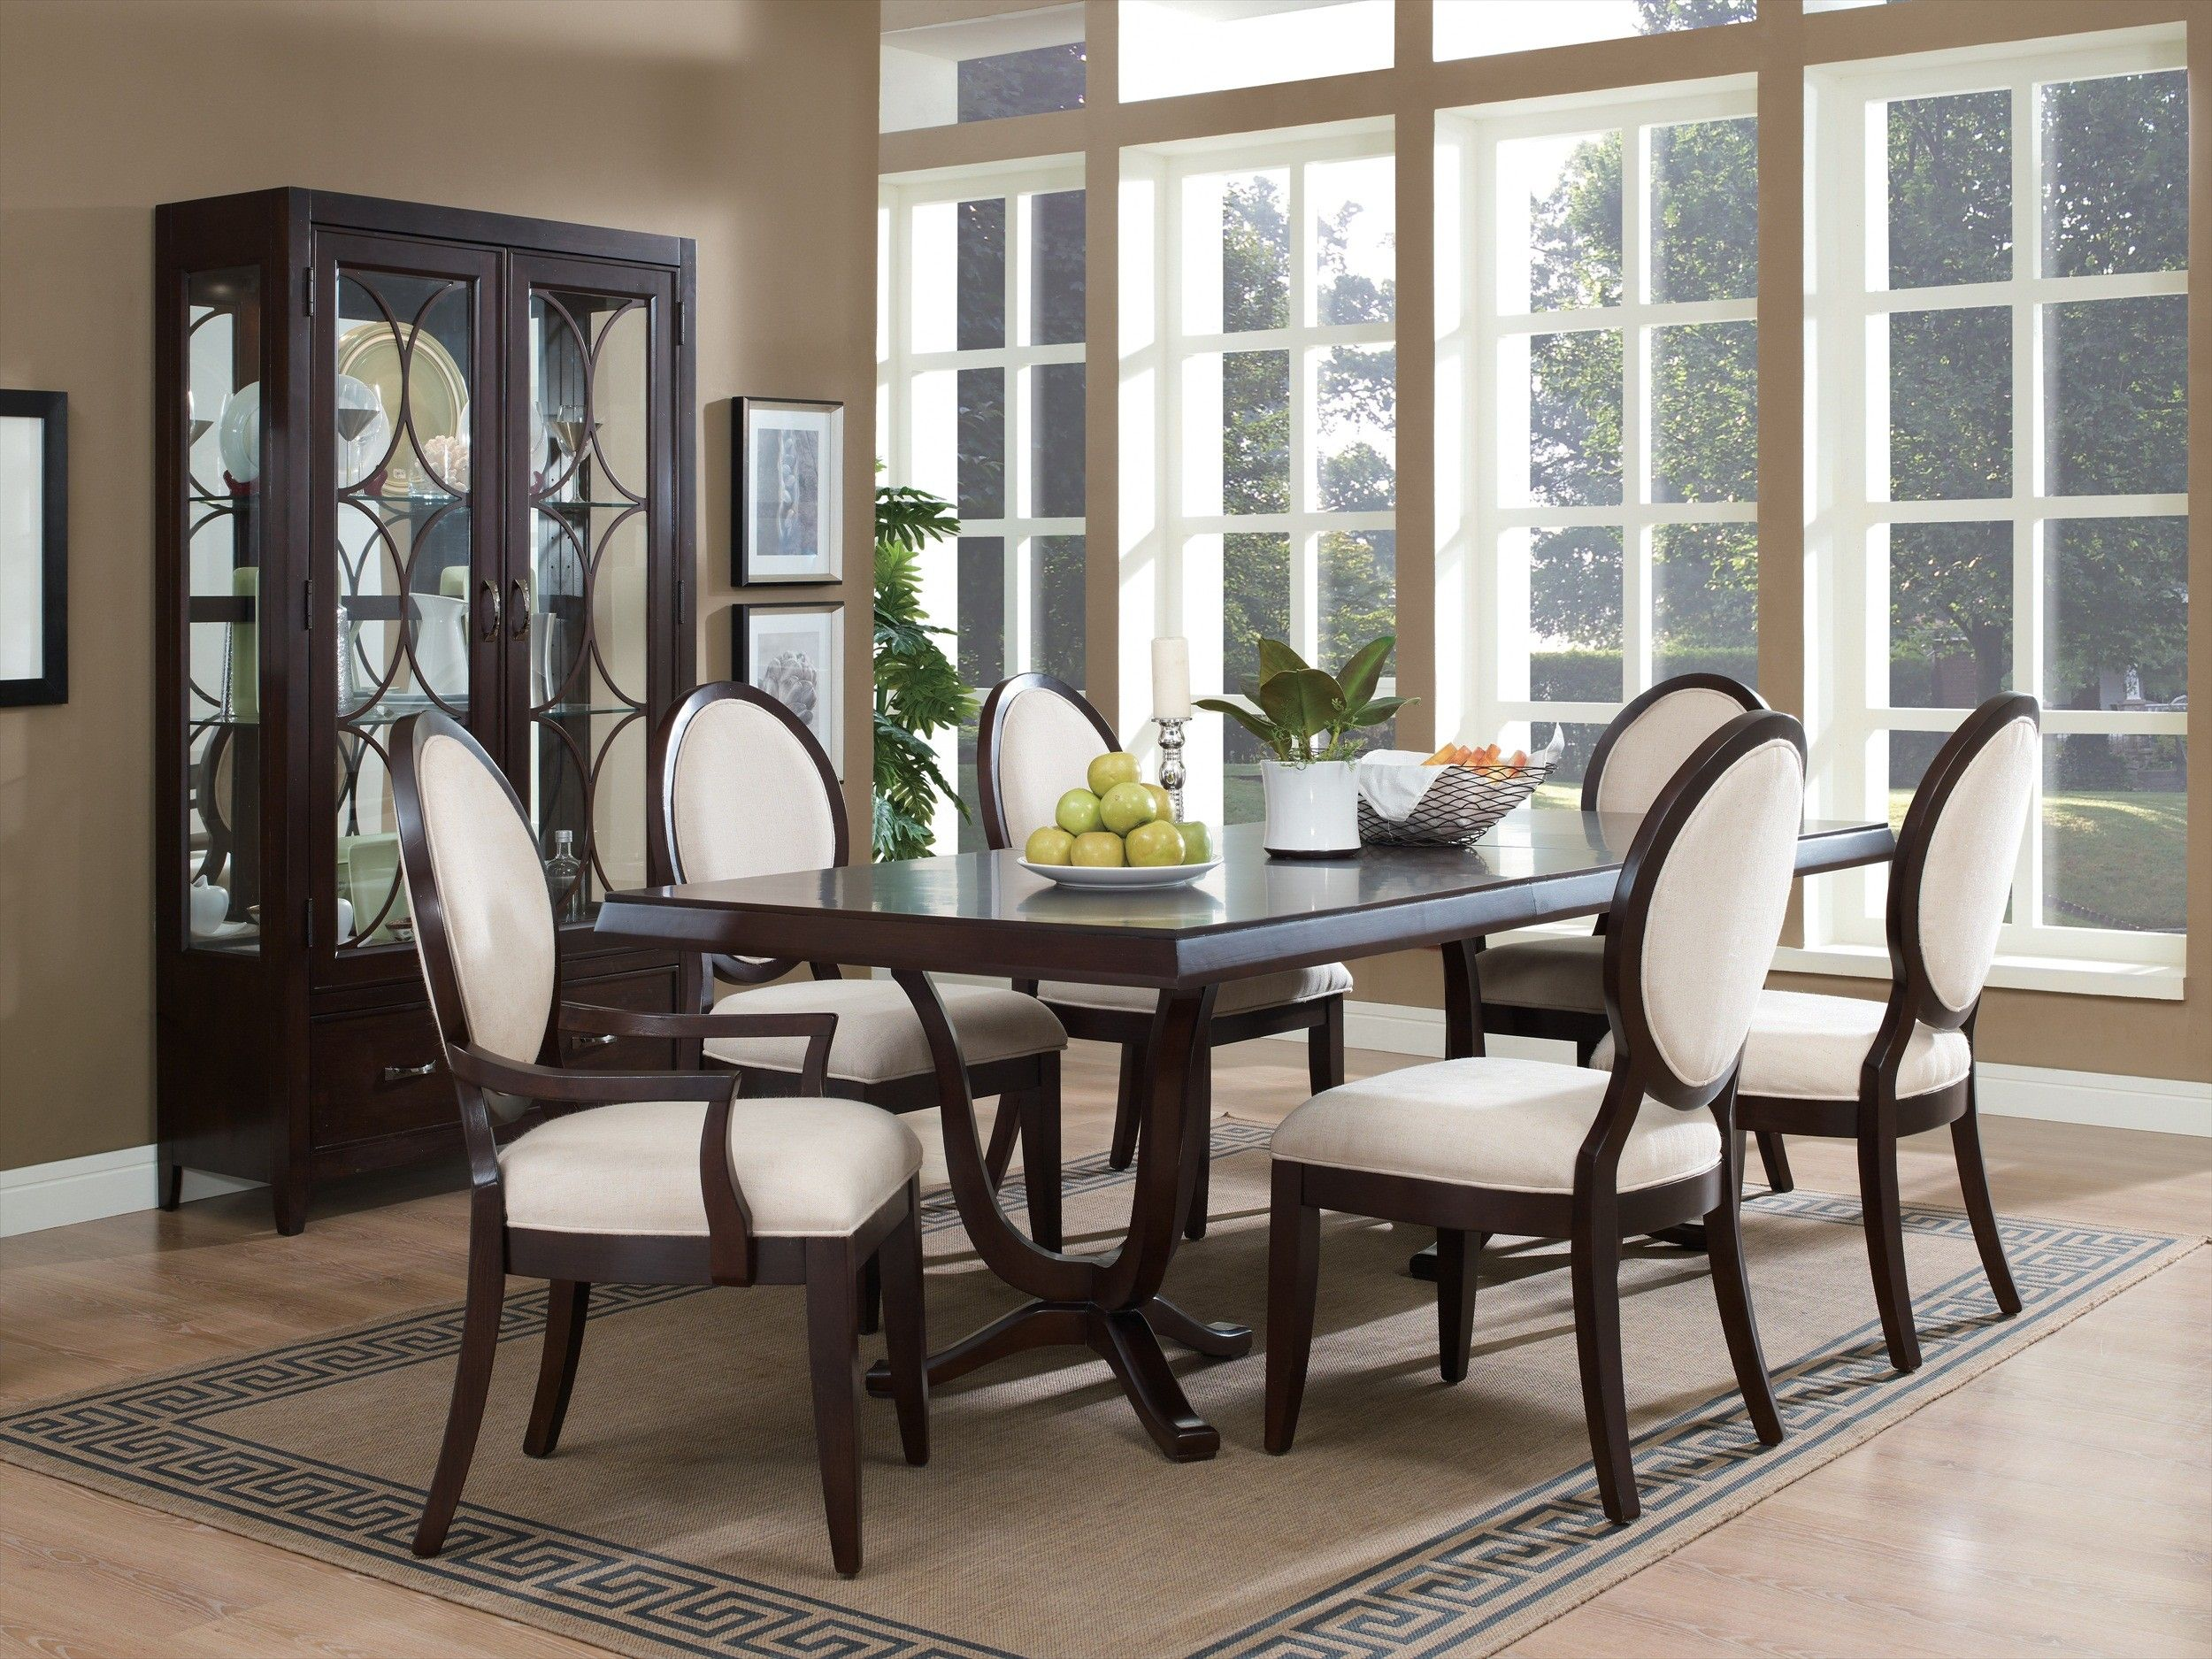 Dining chairs | Formal dining room sets, Dining room ...